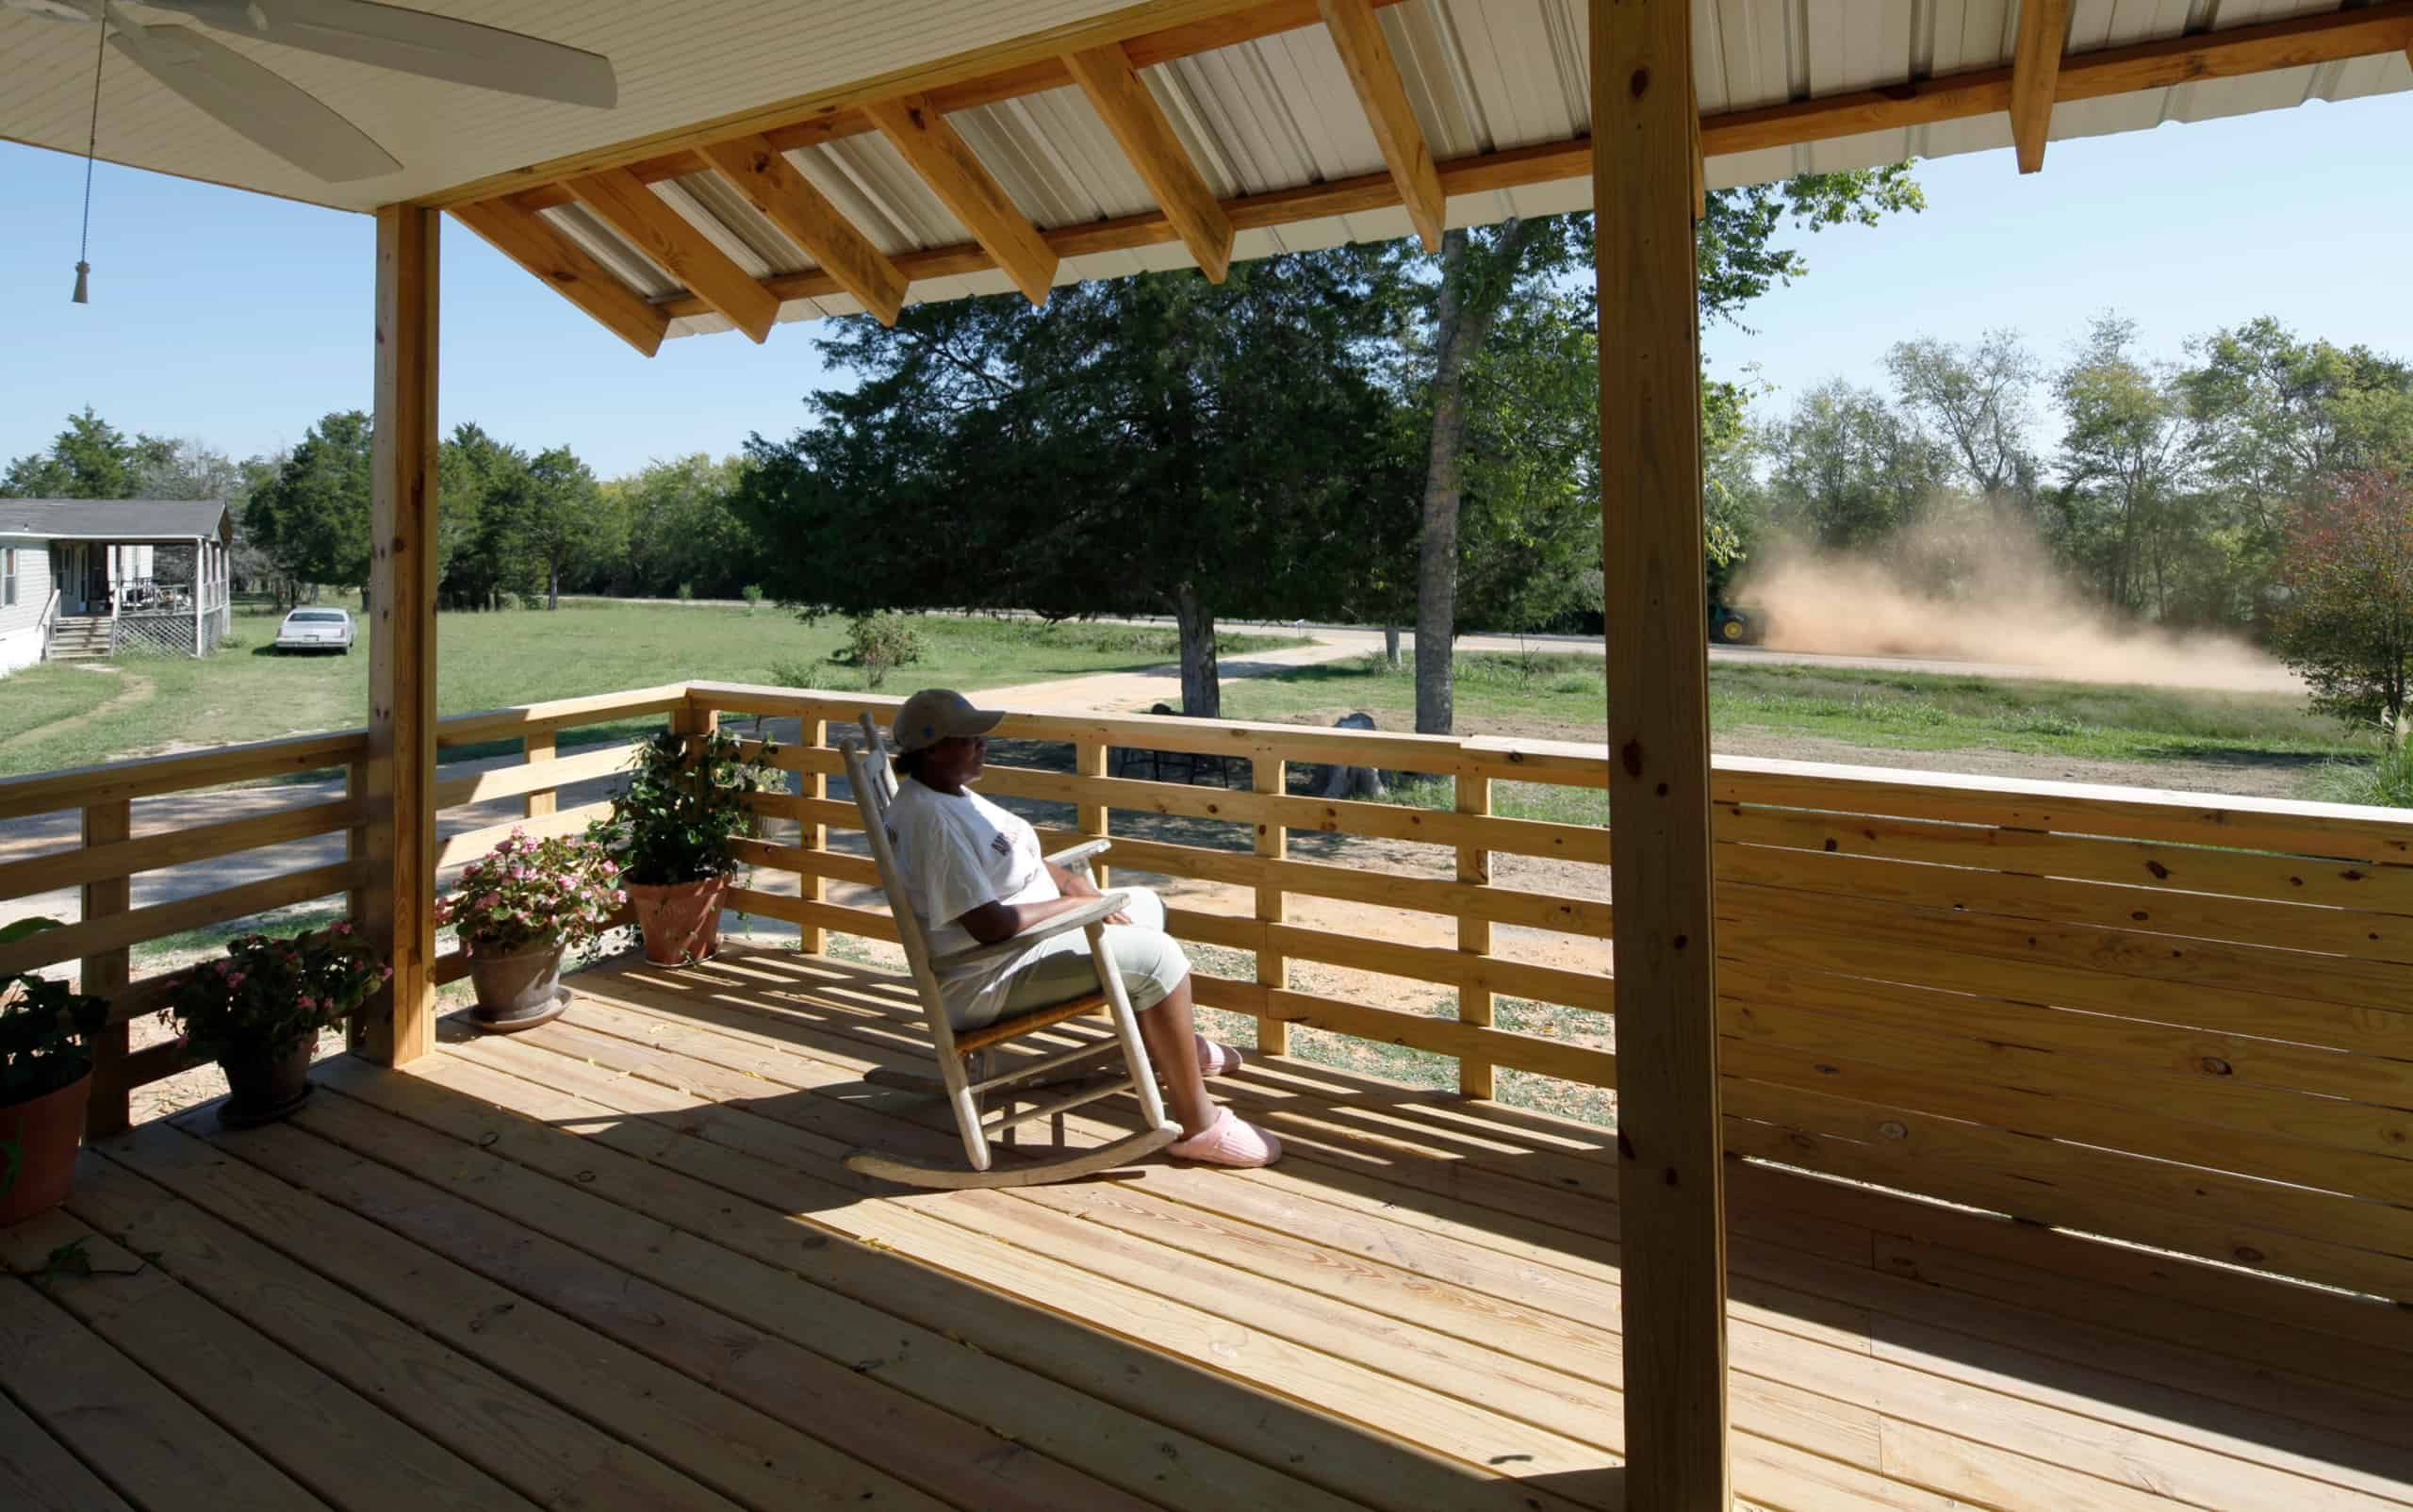 Joanne sitting on her porch in a rocking chair watching a tractor go by, stirring up dust